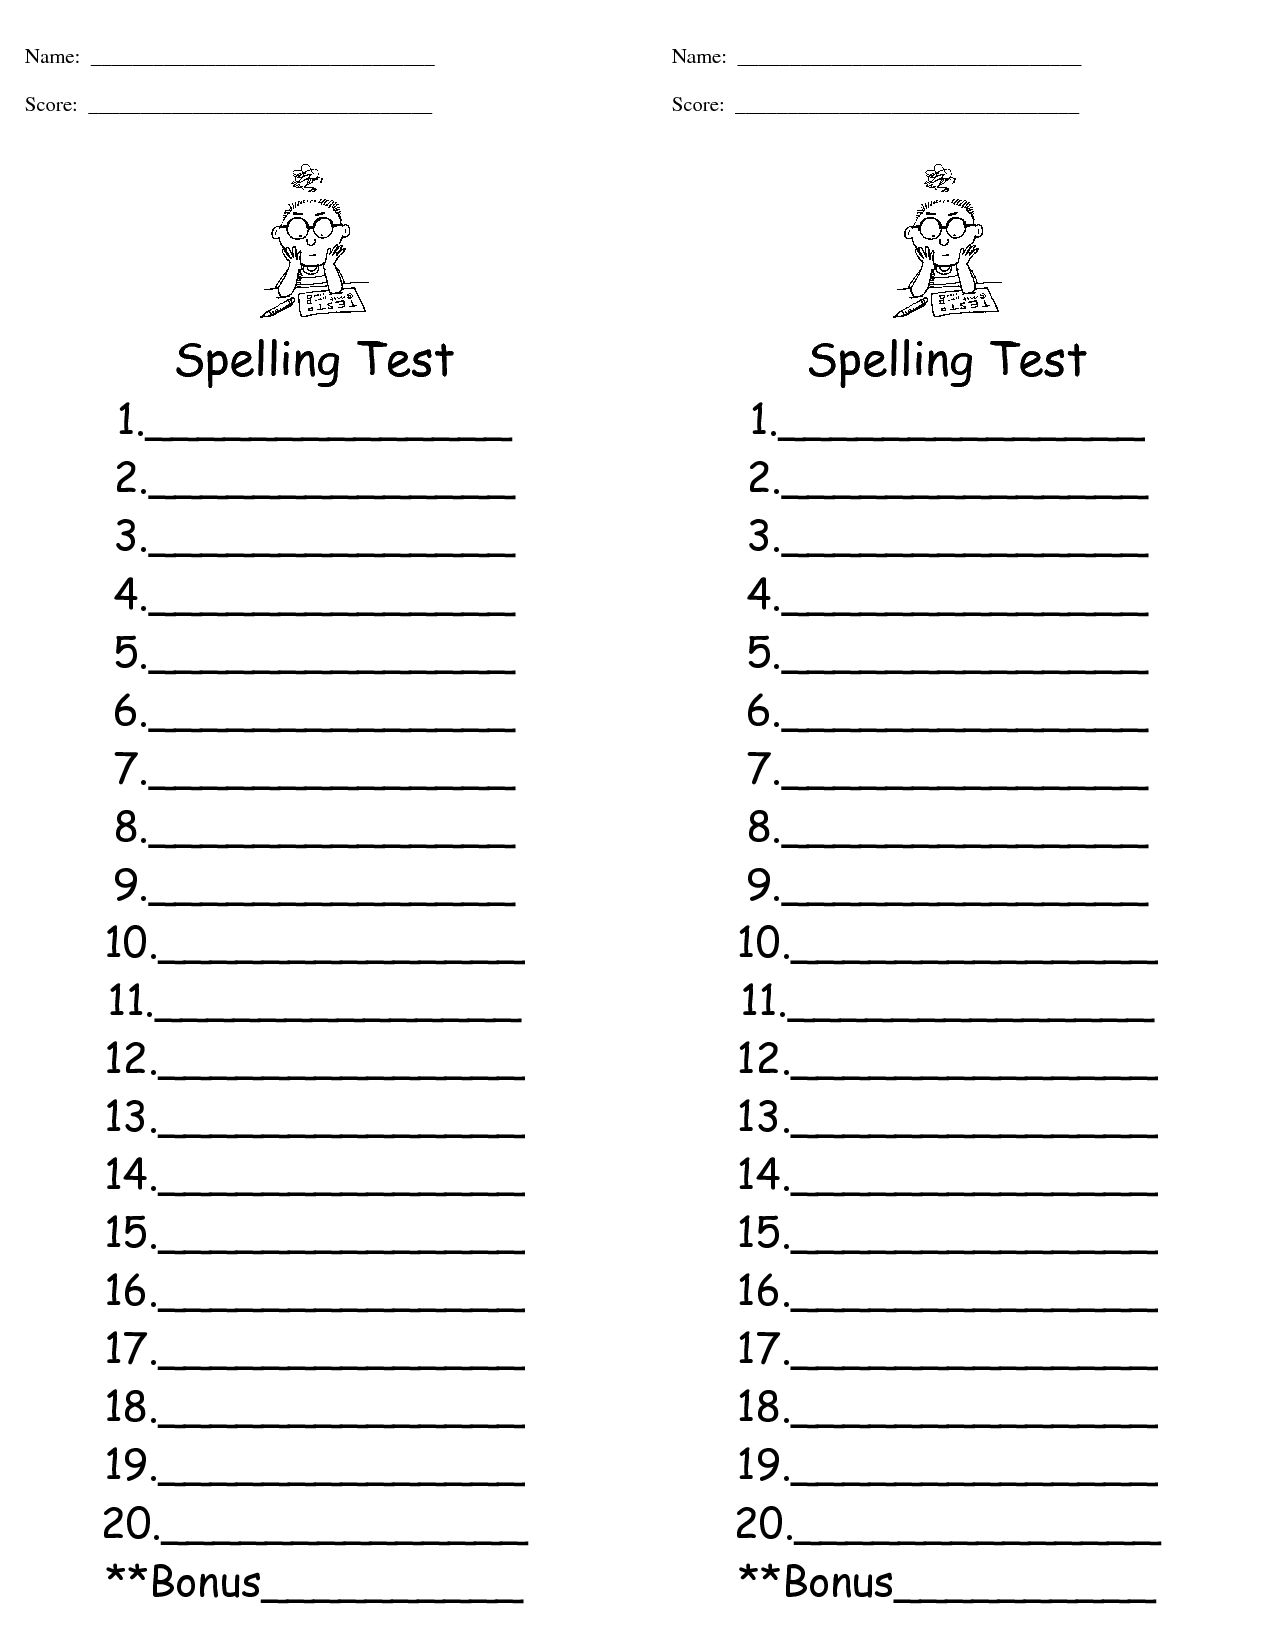 29 Images Of Spelling Words Test Template 9 In